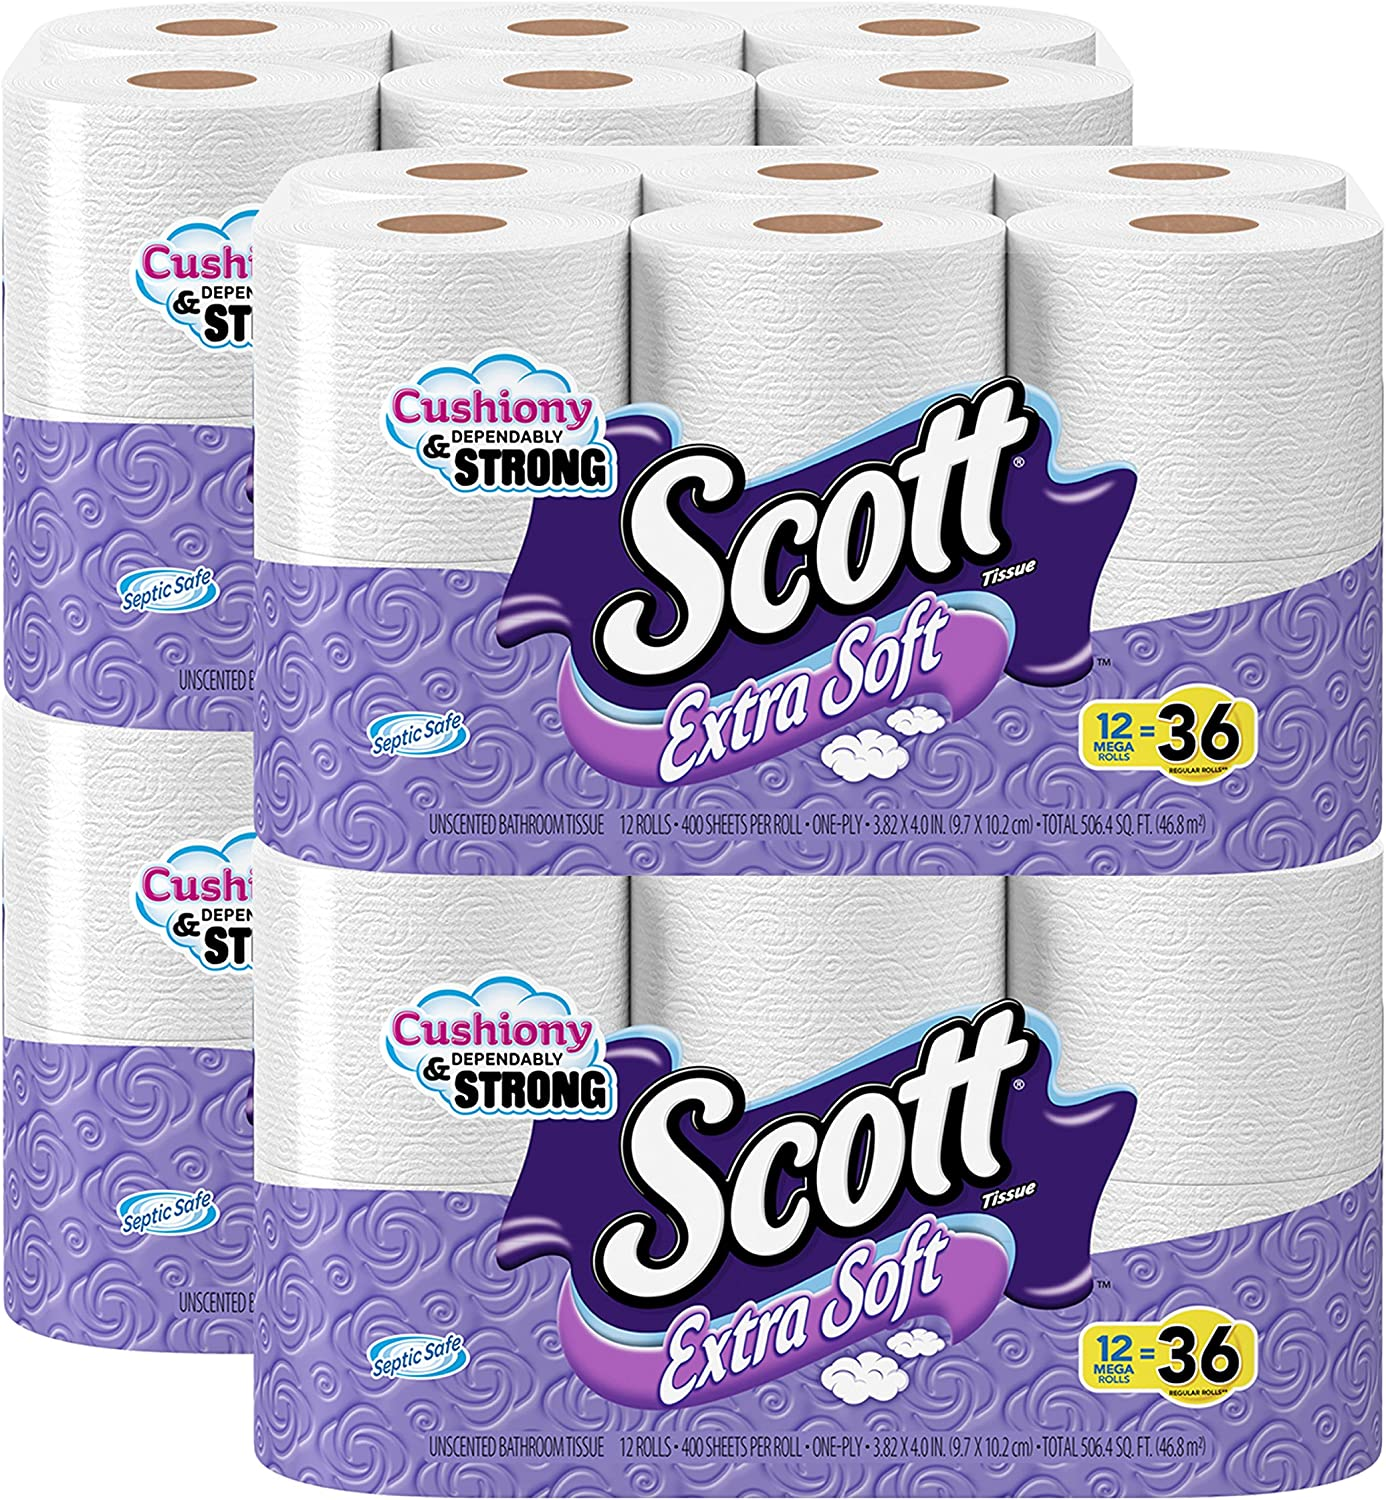 Scott Extra Soft Toilet Paper is an inexpensive toilet paper that is septic safe and soft at the same time